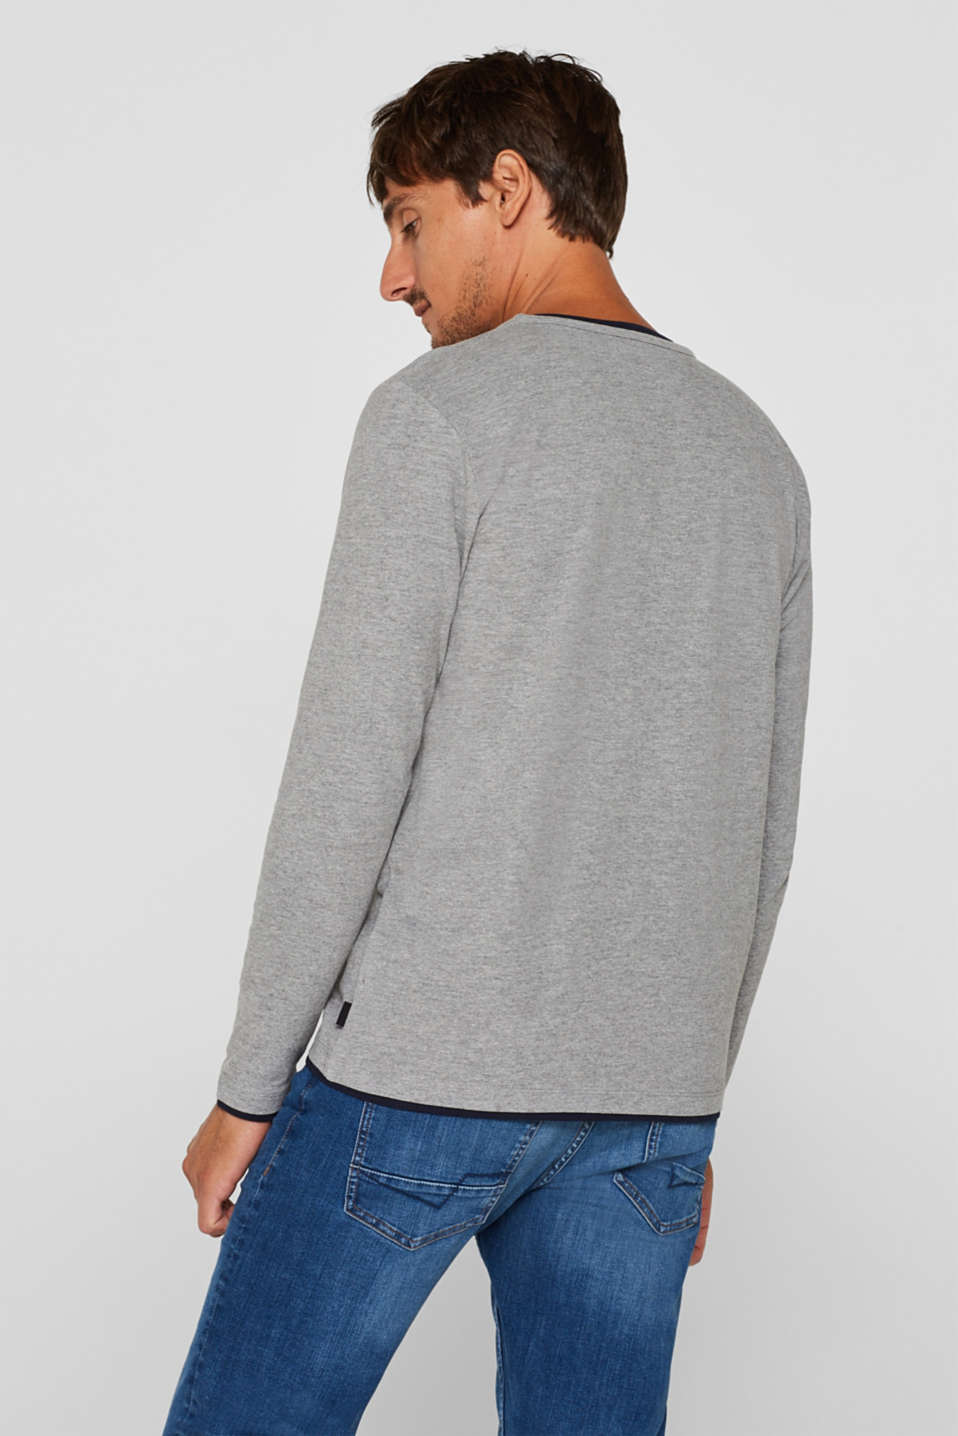 Jersey long sleeve top with a Henley neckline, MEDIUM GREY, detail image number 3